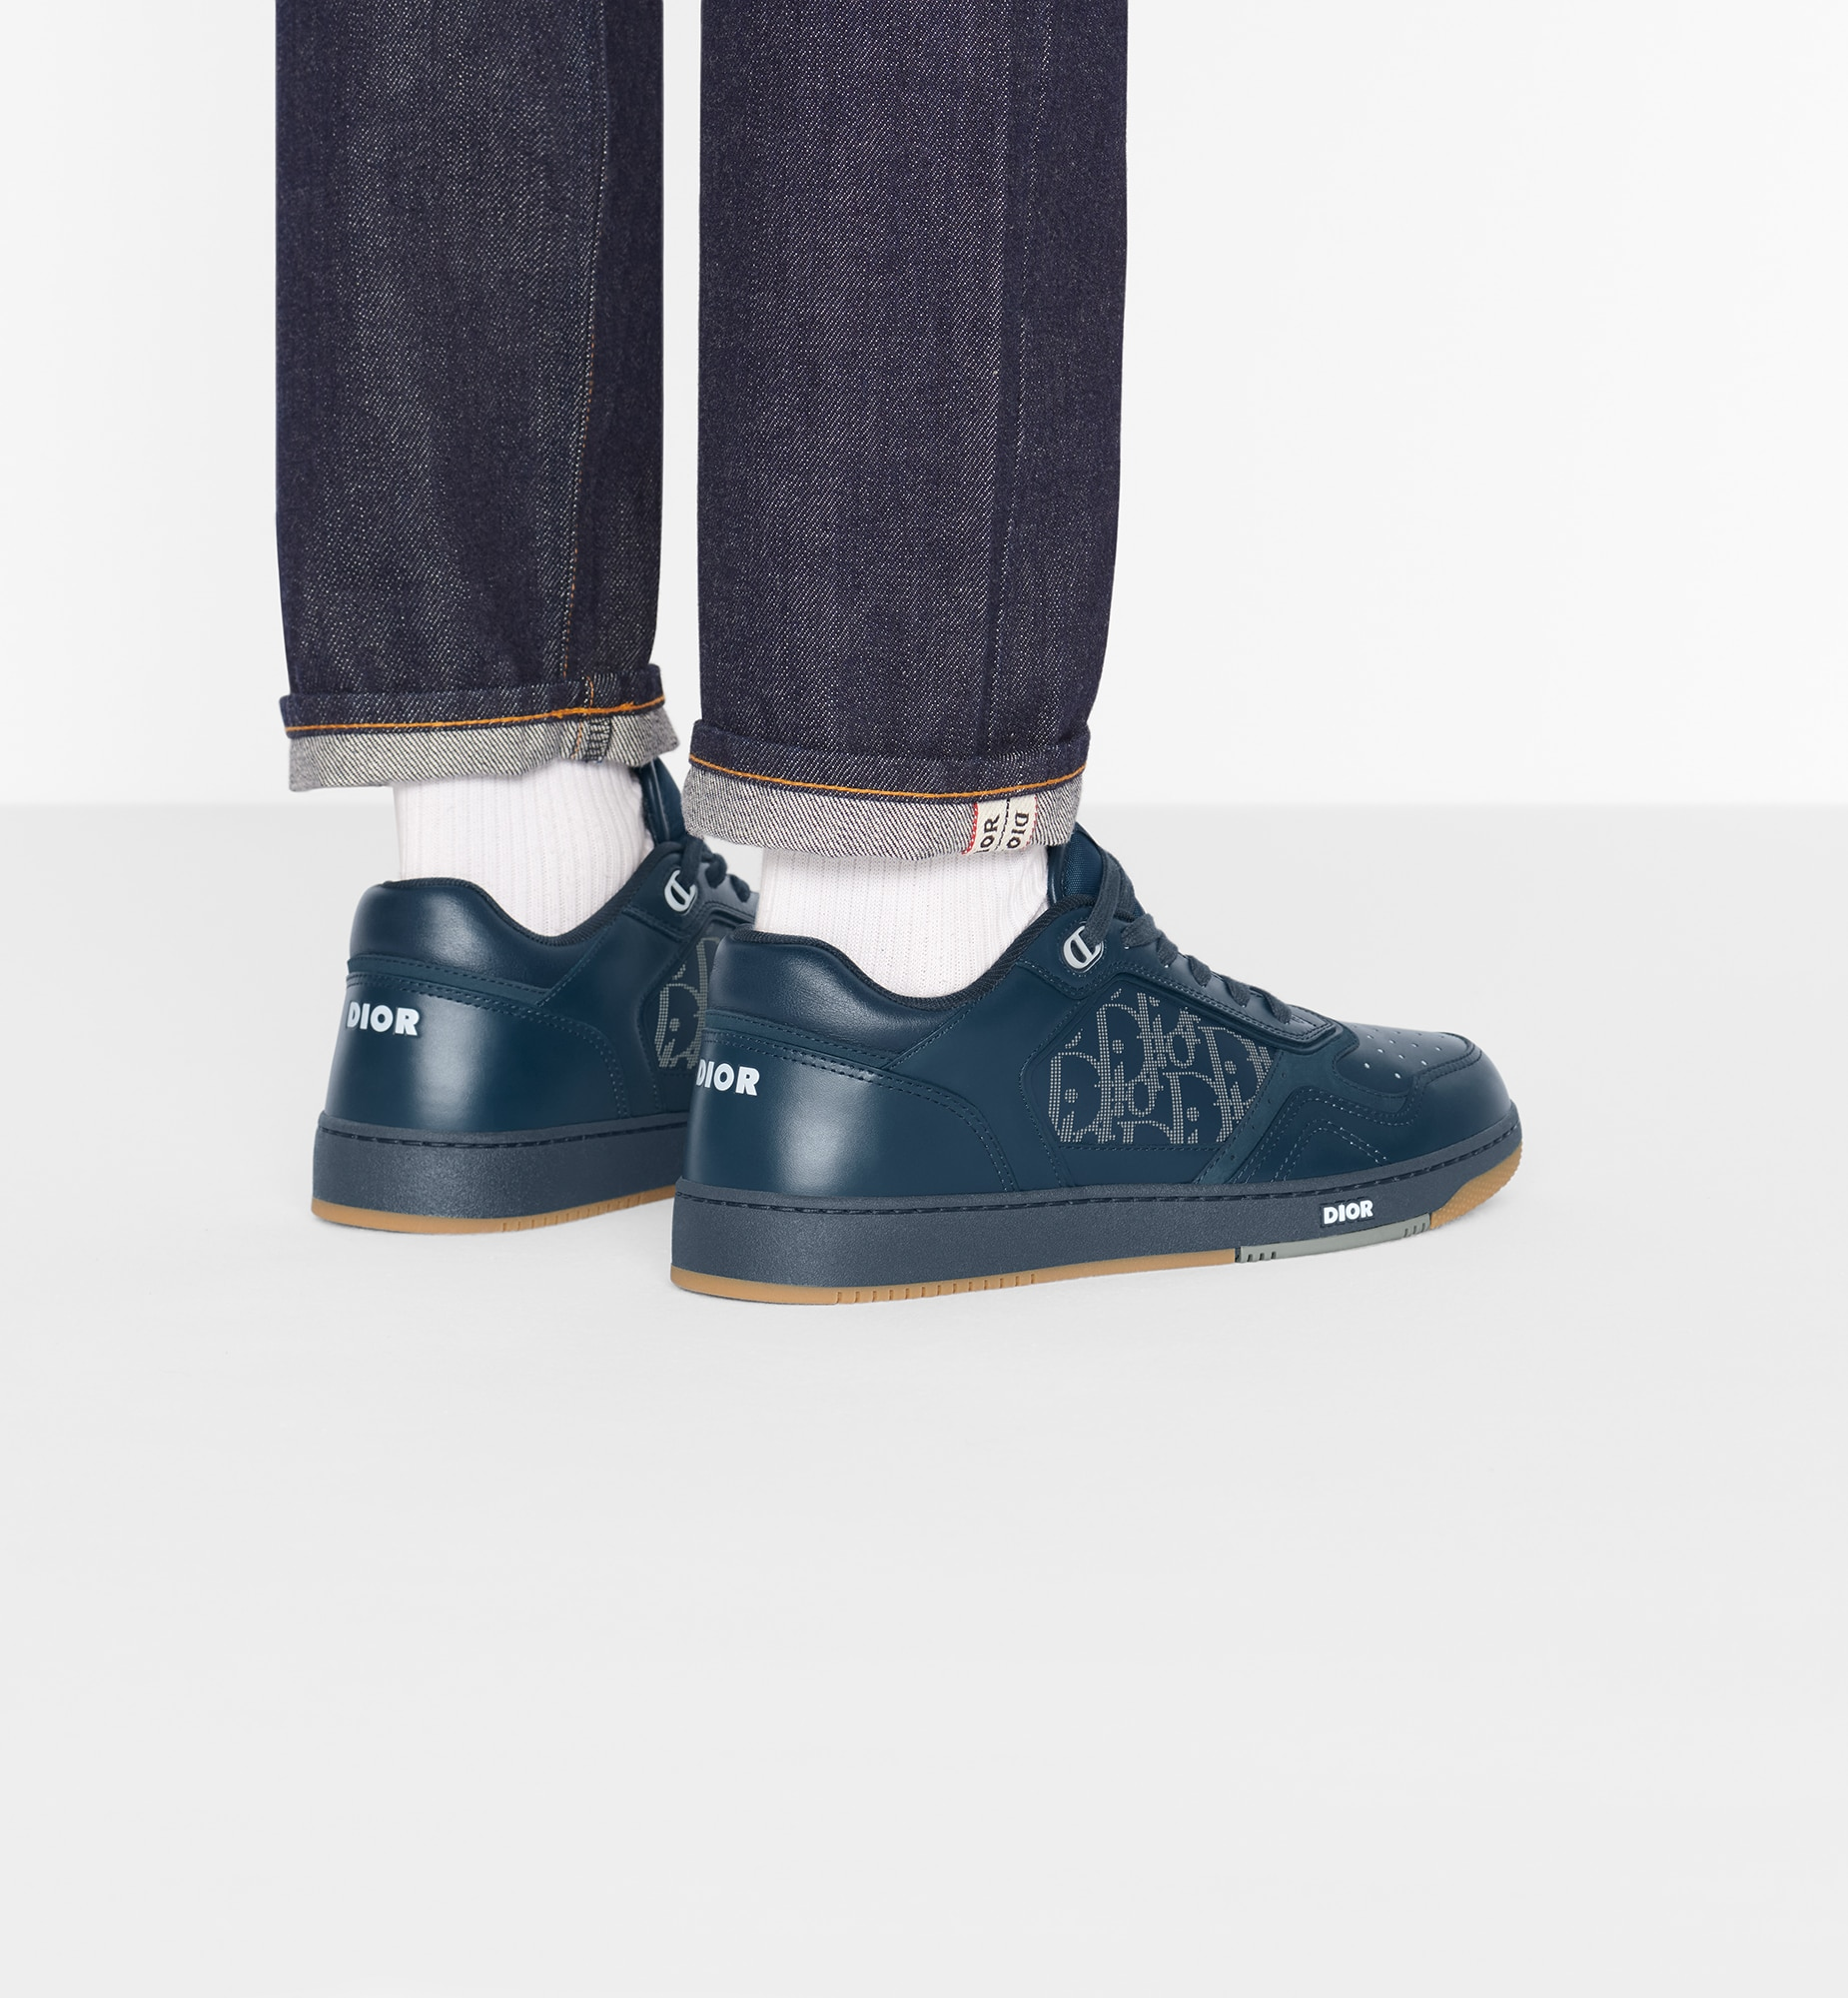 Dior World Tour B27 Low-Top Sneaker Open gallery